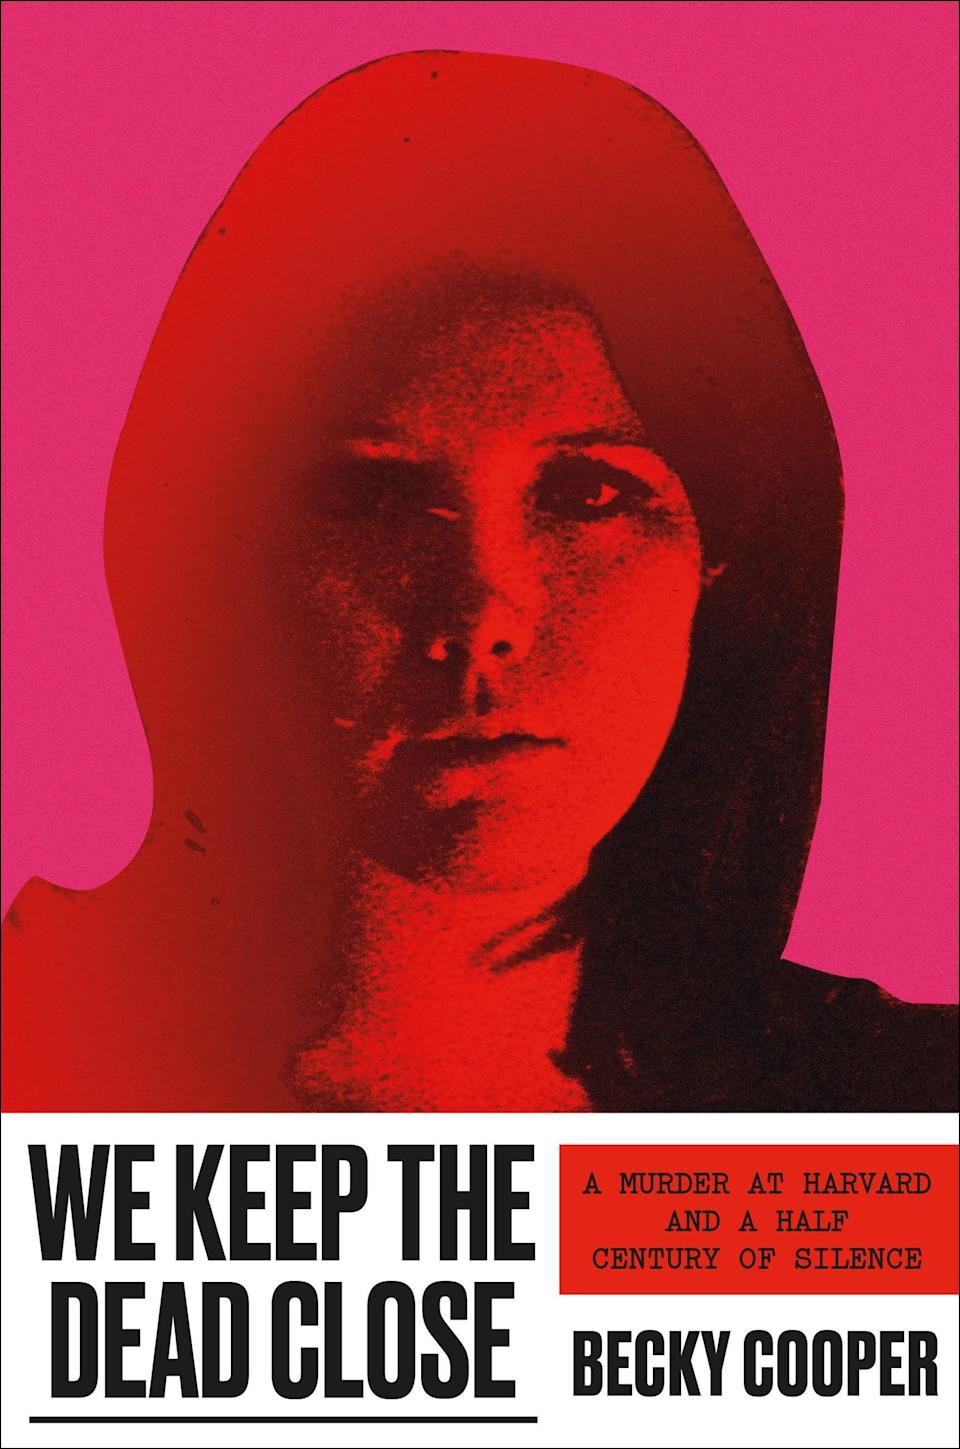 <p>In <span><strong>We Keep the Dead Close</strong></span>, author Becky Cooper presents the meticulously researched true story of 23-year-old Harvard student Jane Britton, who was found bludgeoned to death in her apartment in 1969. The circumstances around Britton's death have been plagued with misinformation fueled by misogyny and a desire to protect the elite institution for years, but thanks to Cooper, Britton's story is finally being told. </p> <p><em>Out Nov. 10</em></p>